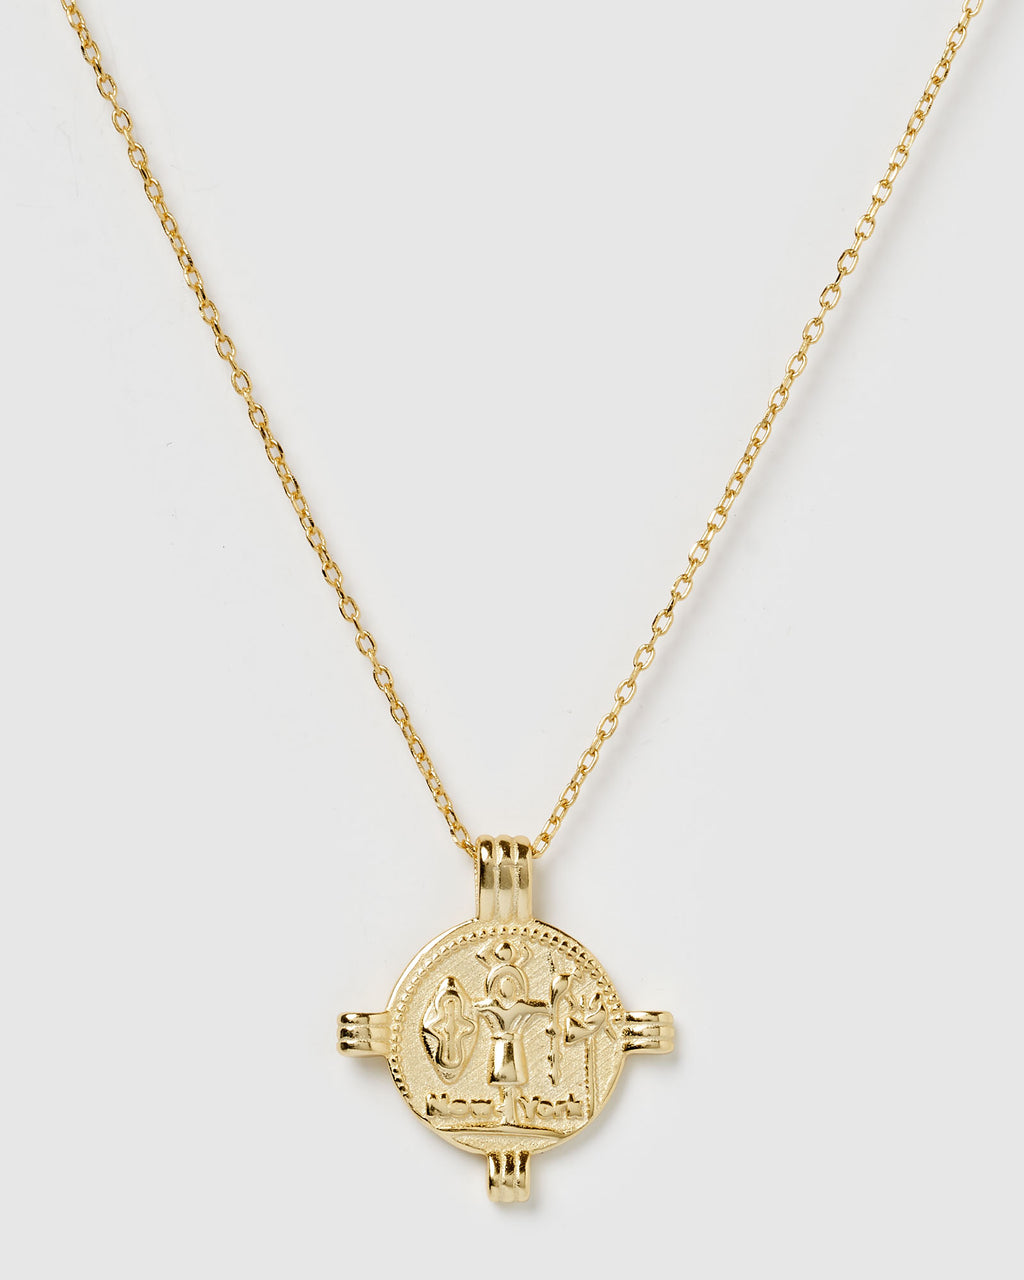 Izoa Blessings Pendant Necklace Gold